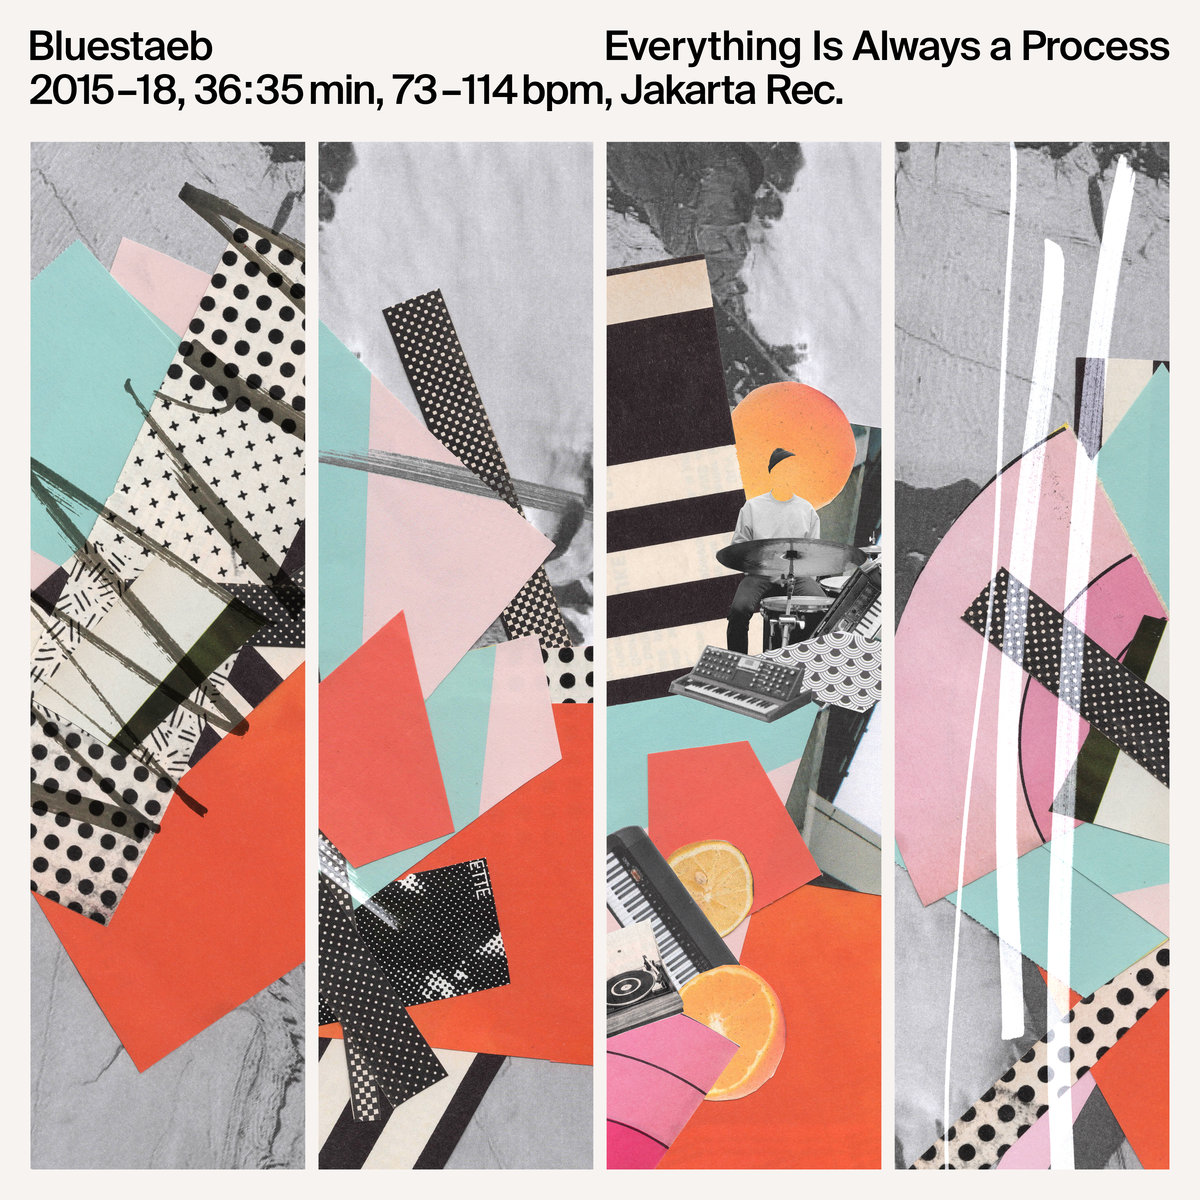 Everything_is_always_a_process